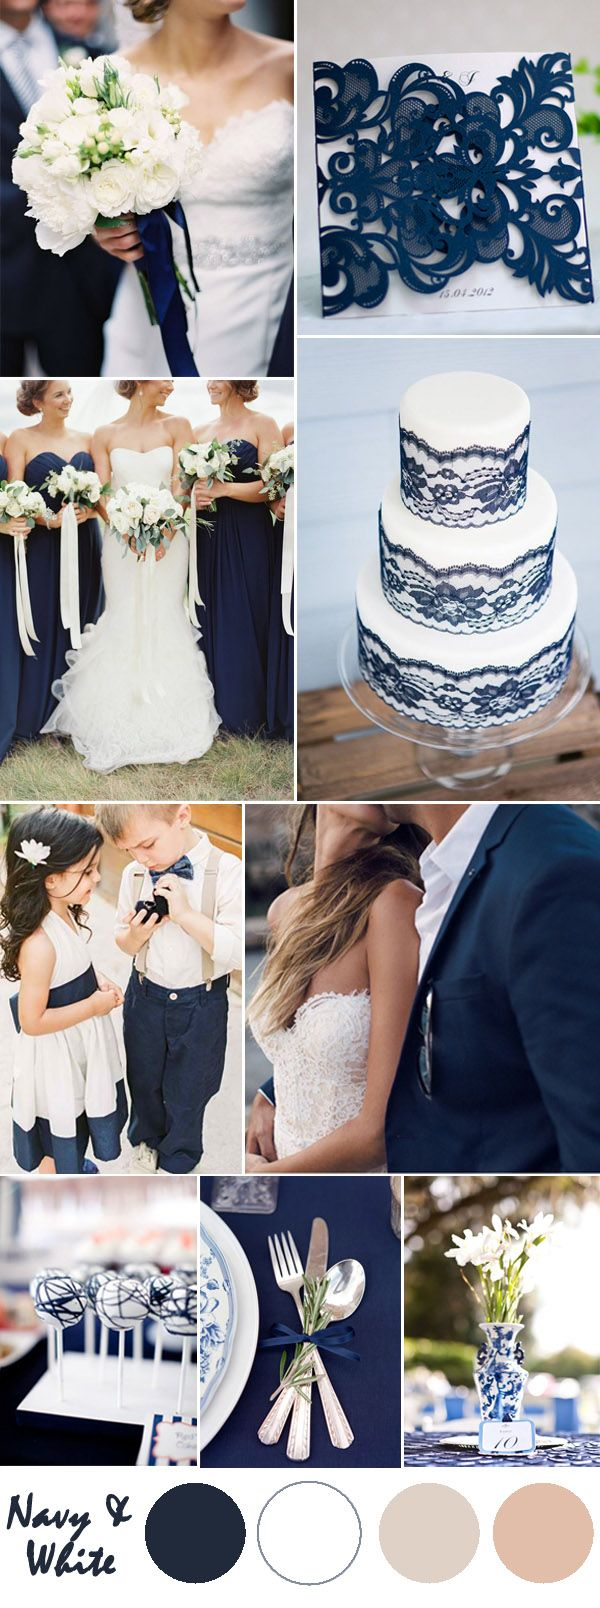 25 best ideas about navy blue weddings on pinterest for Navy blue wedding theme ideas